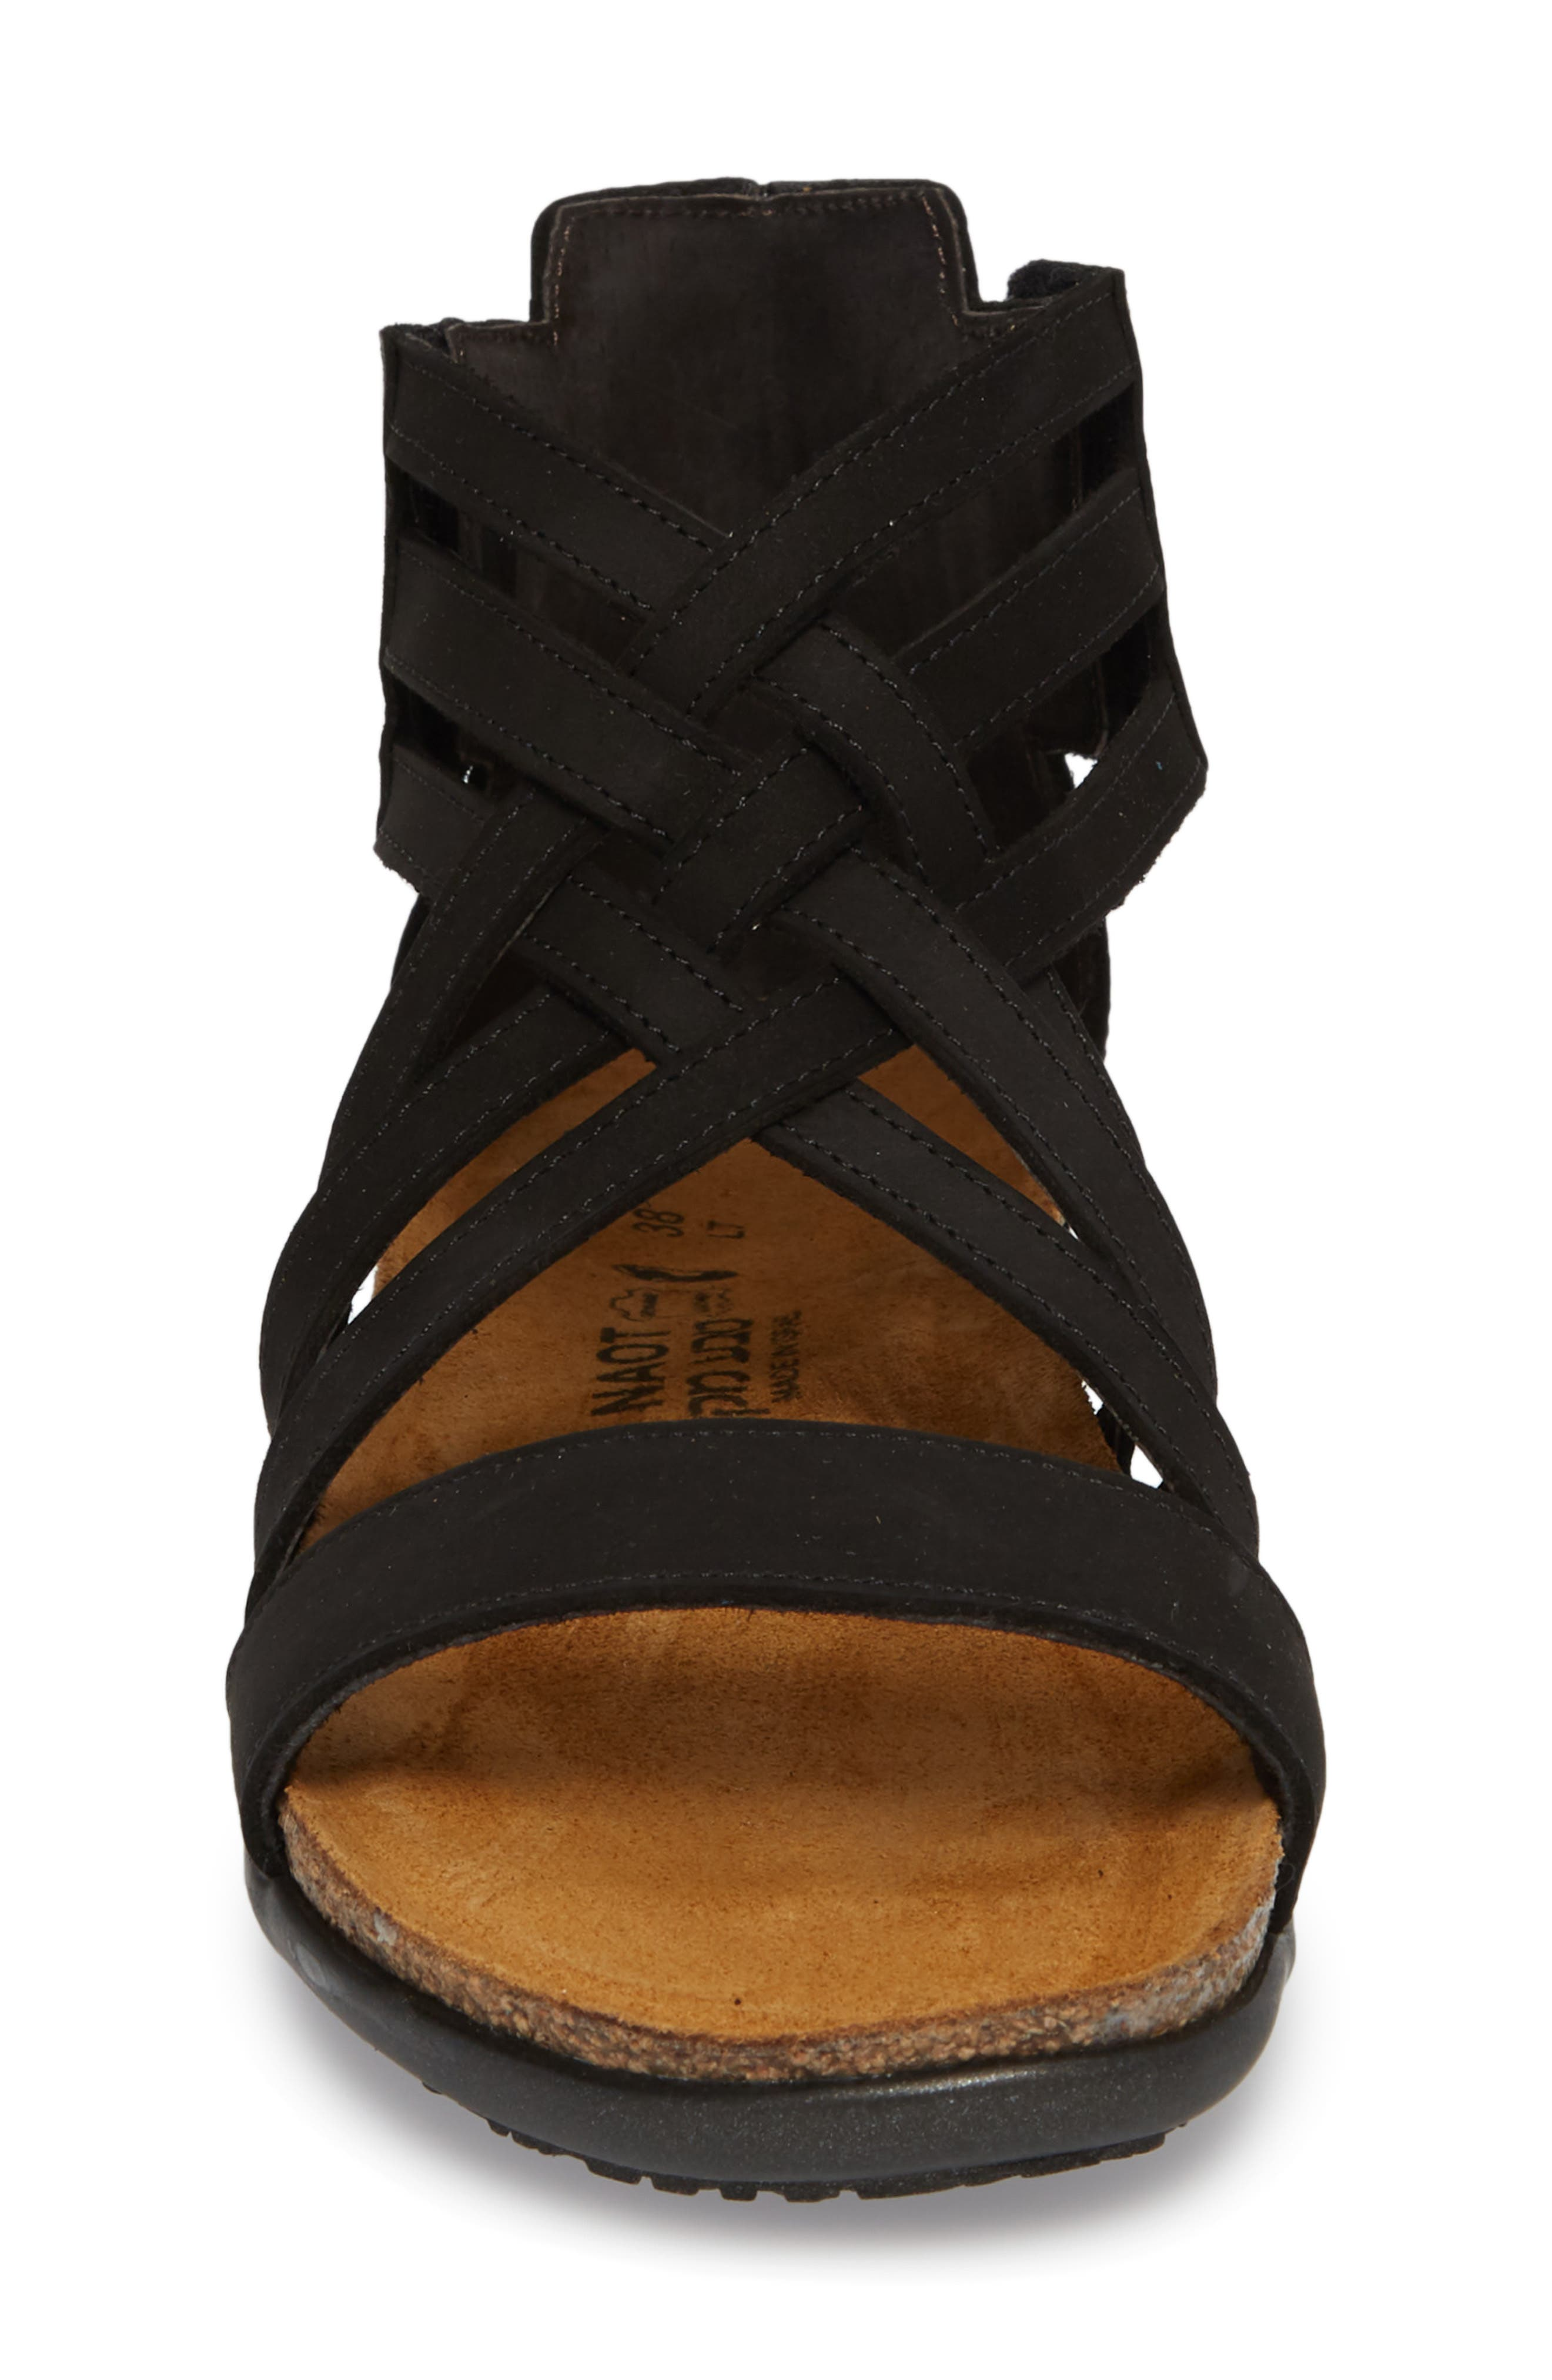 NAOT, Marita Sandal, Alternate thumbnail 4, color, BLACK VELVET NUBUCK